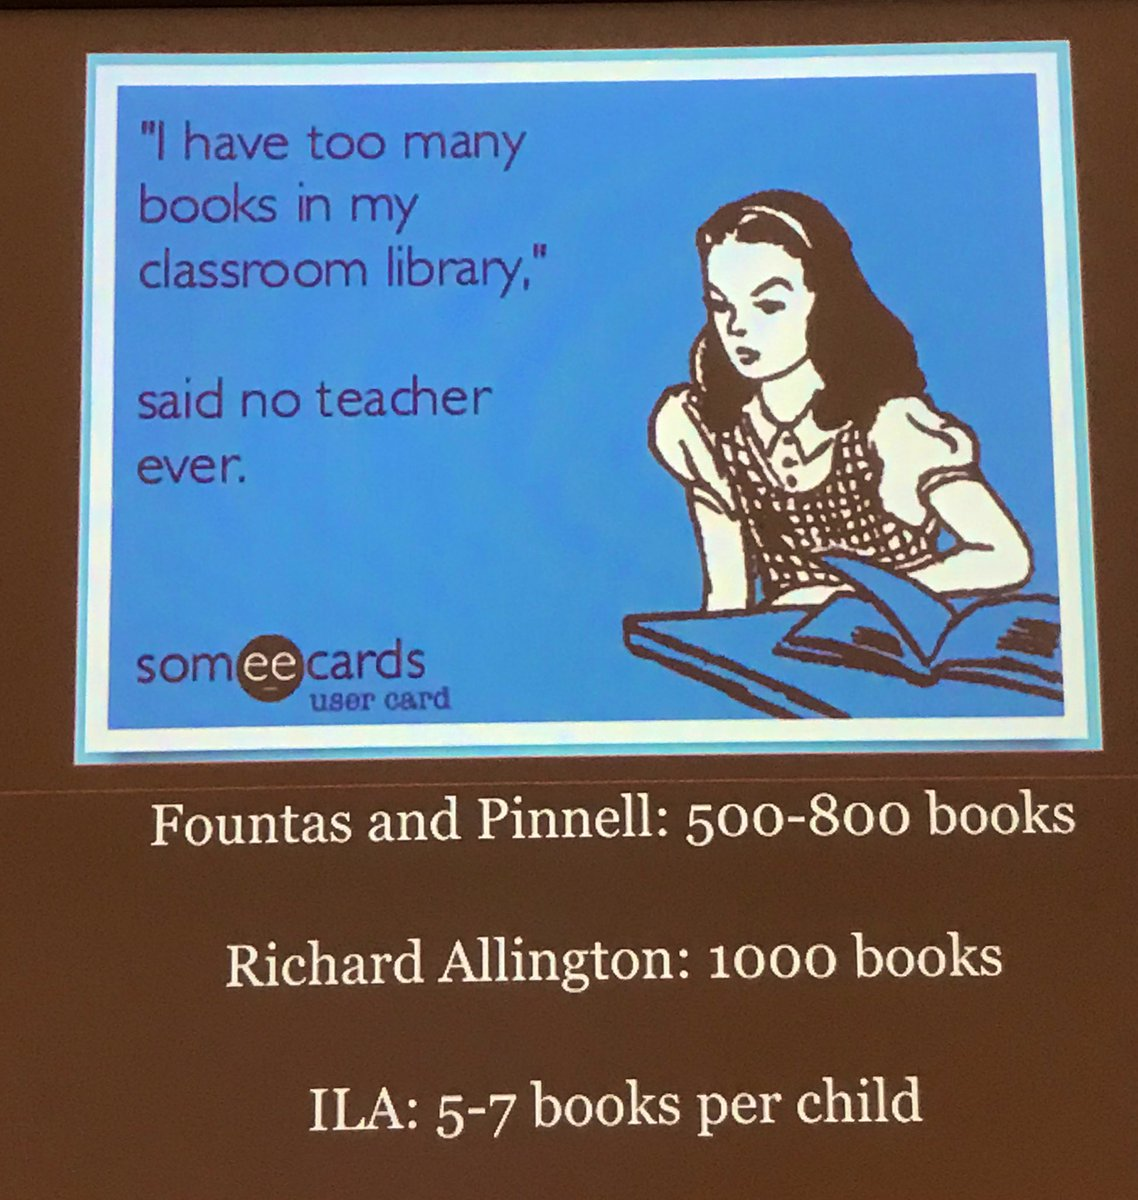 🤣🤣🤣 (It's funny because it's TRUE!) @donalynbooks #neverenough